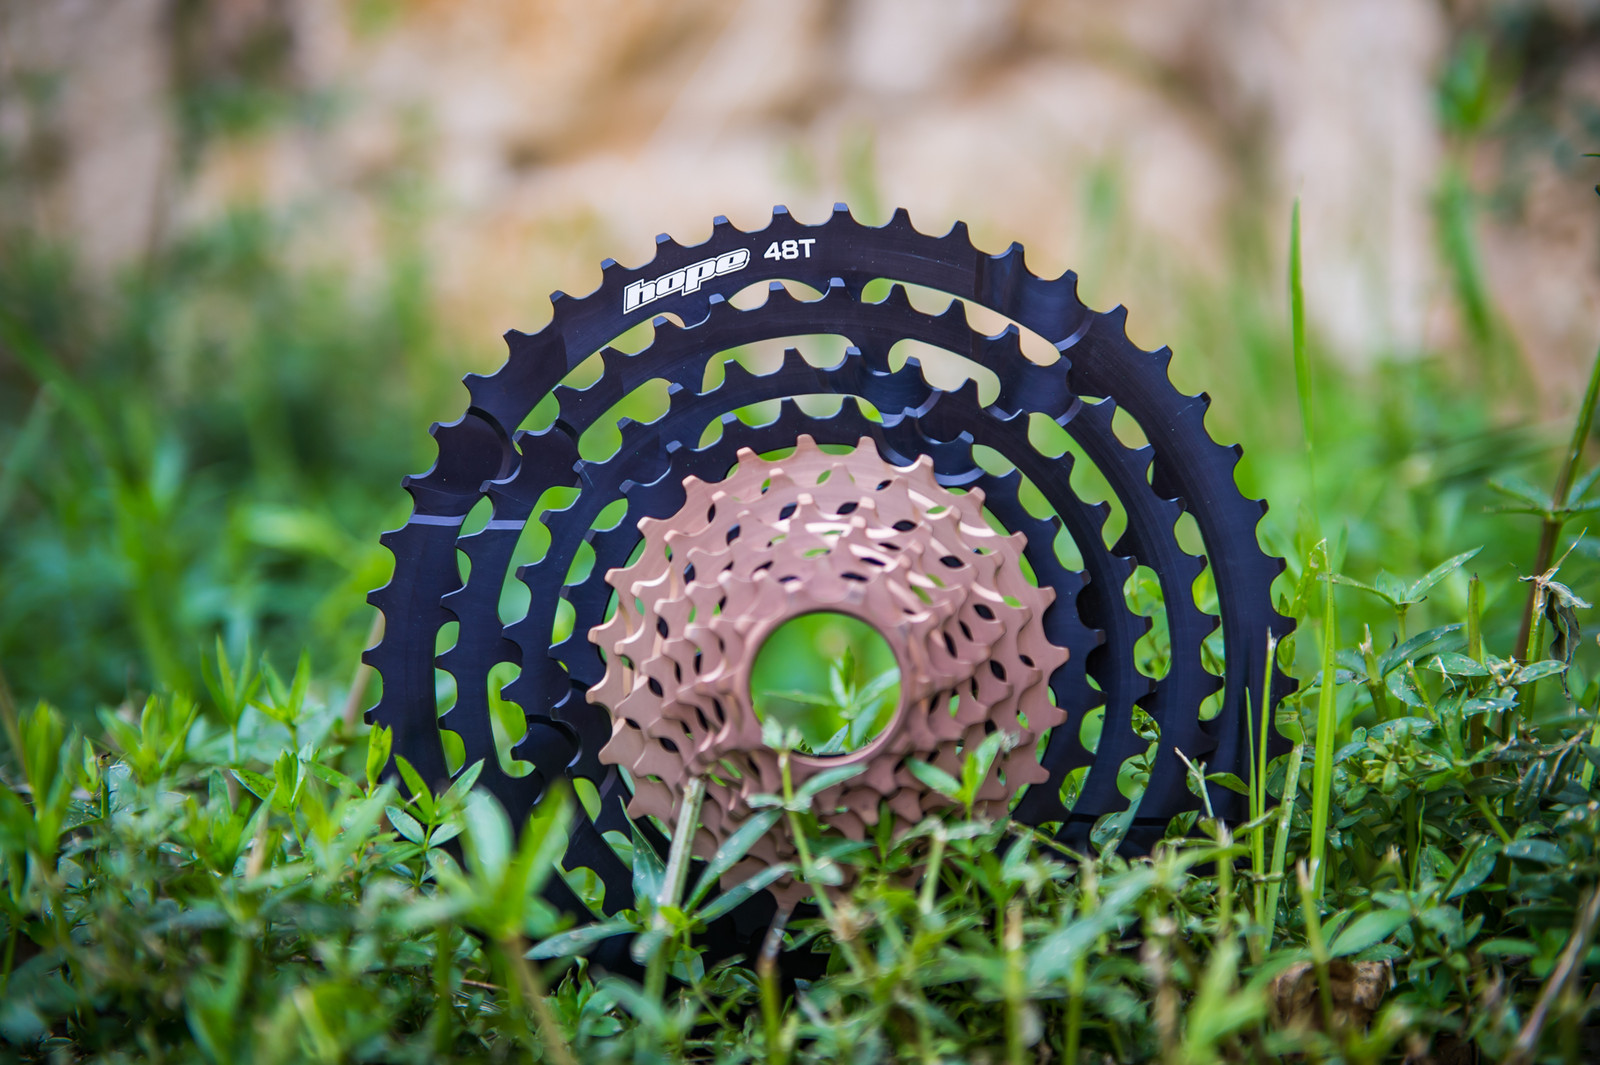 Hope Technology 11 Speed Cassette Reviews Comparisons Specs Mini Group Set 11speed Slx Sprocket 46t Played Around With A 9t On Their Prototype Cassettes For Some Time But Eventually Ended Up Settling 10t As They Found Issue